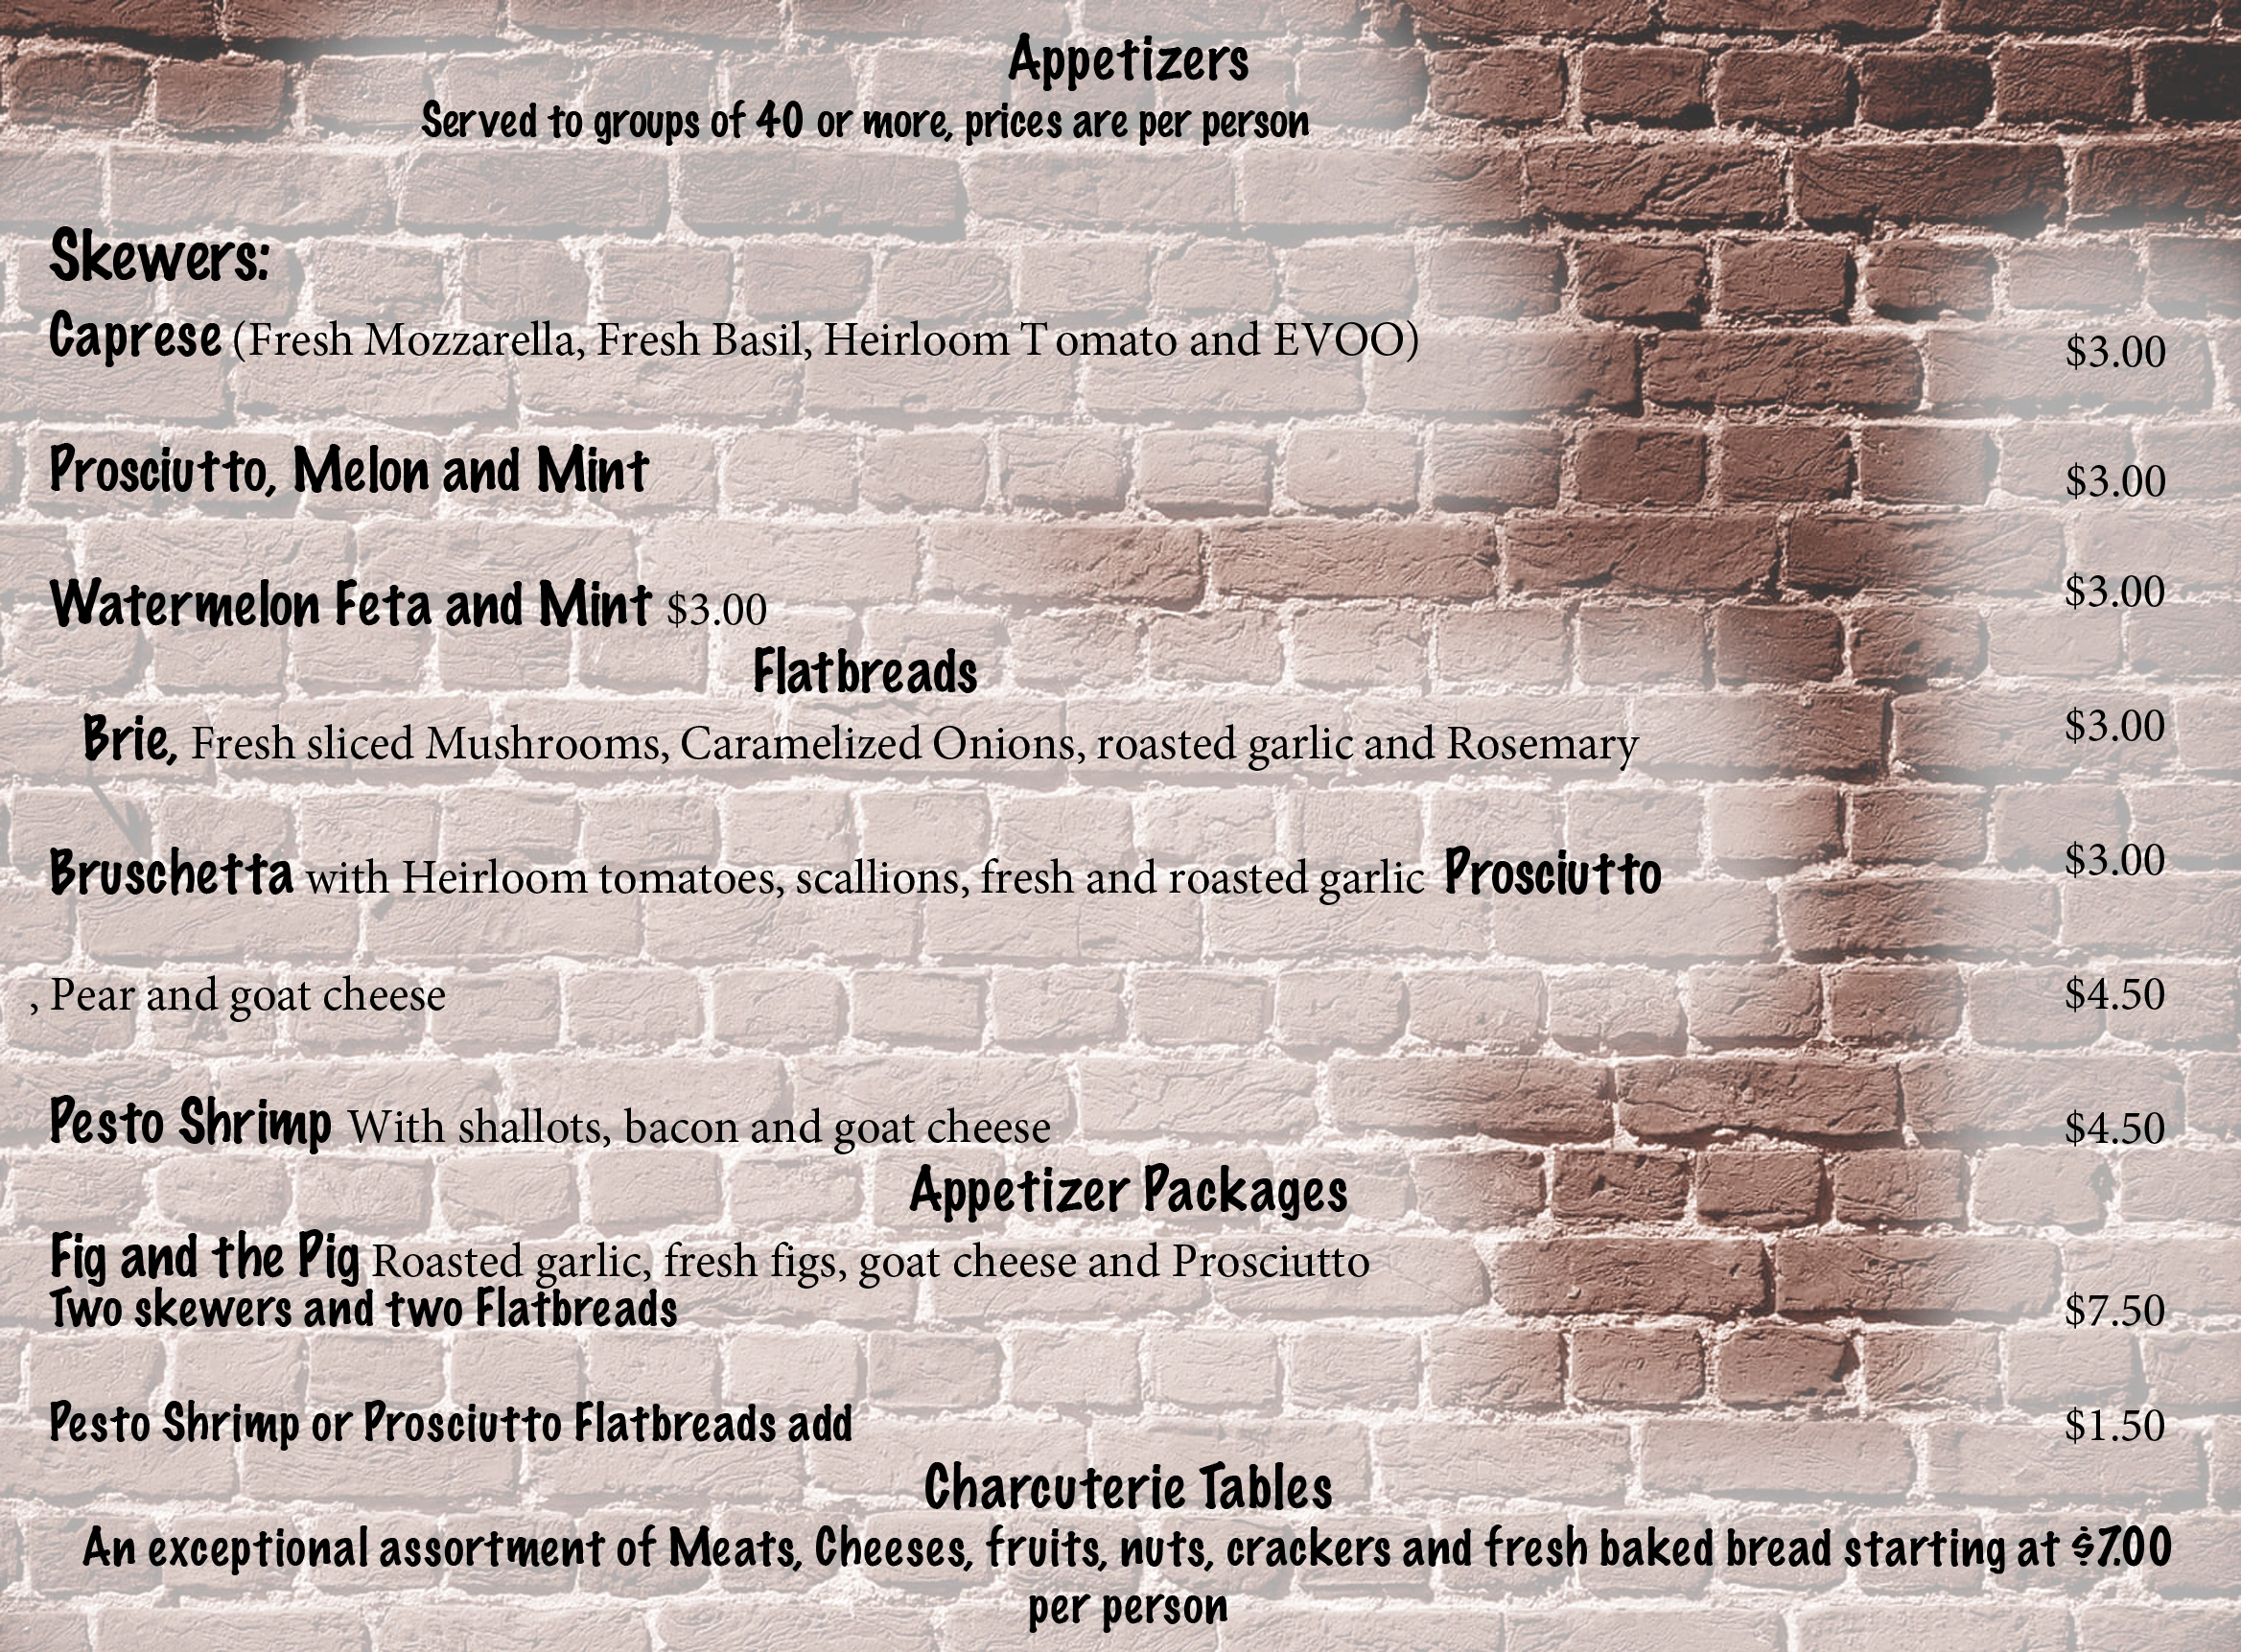 Appetizer Menu for Inferno WoodFired Pizza Kitchen . Skewers, Flatbreads, Charcuterie Tables, Etc.